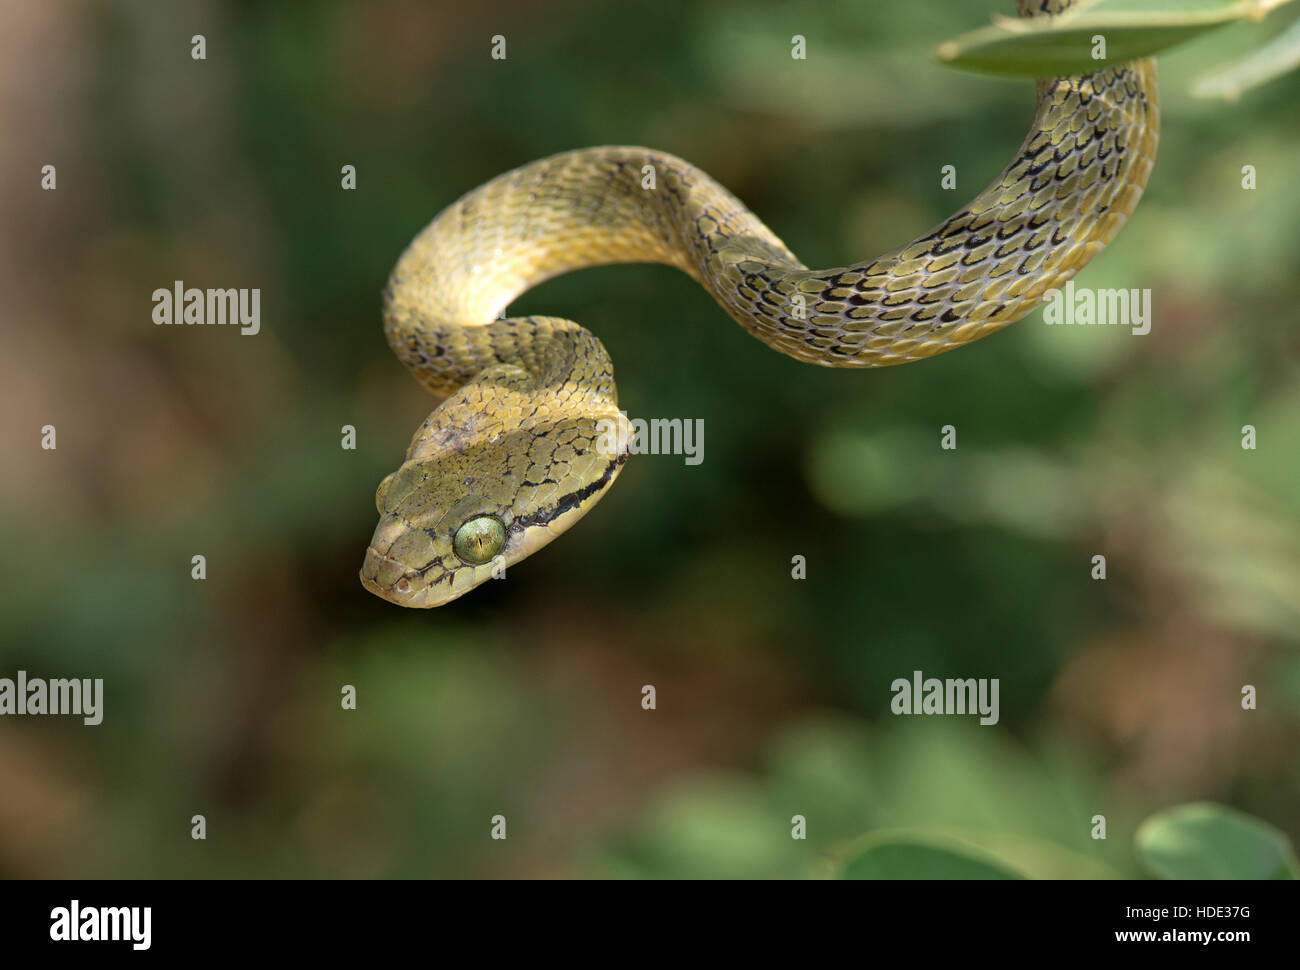 The image of yellow Green  cat Snake ( Boiga flaviviridis ) was taken in Hampi, Karnatka, India - Stock Image